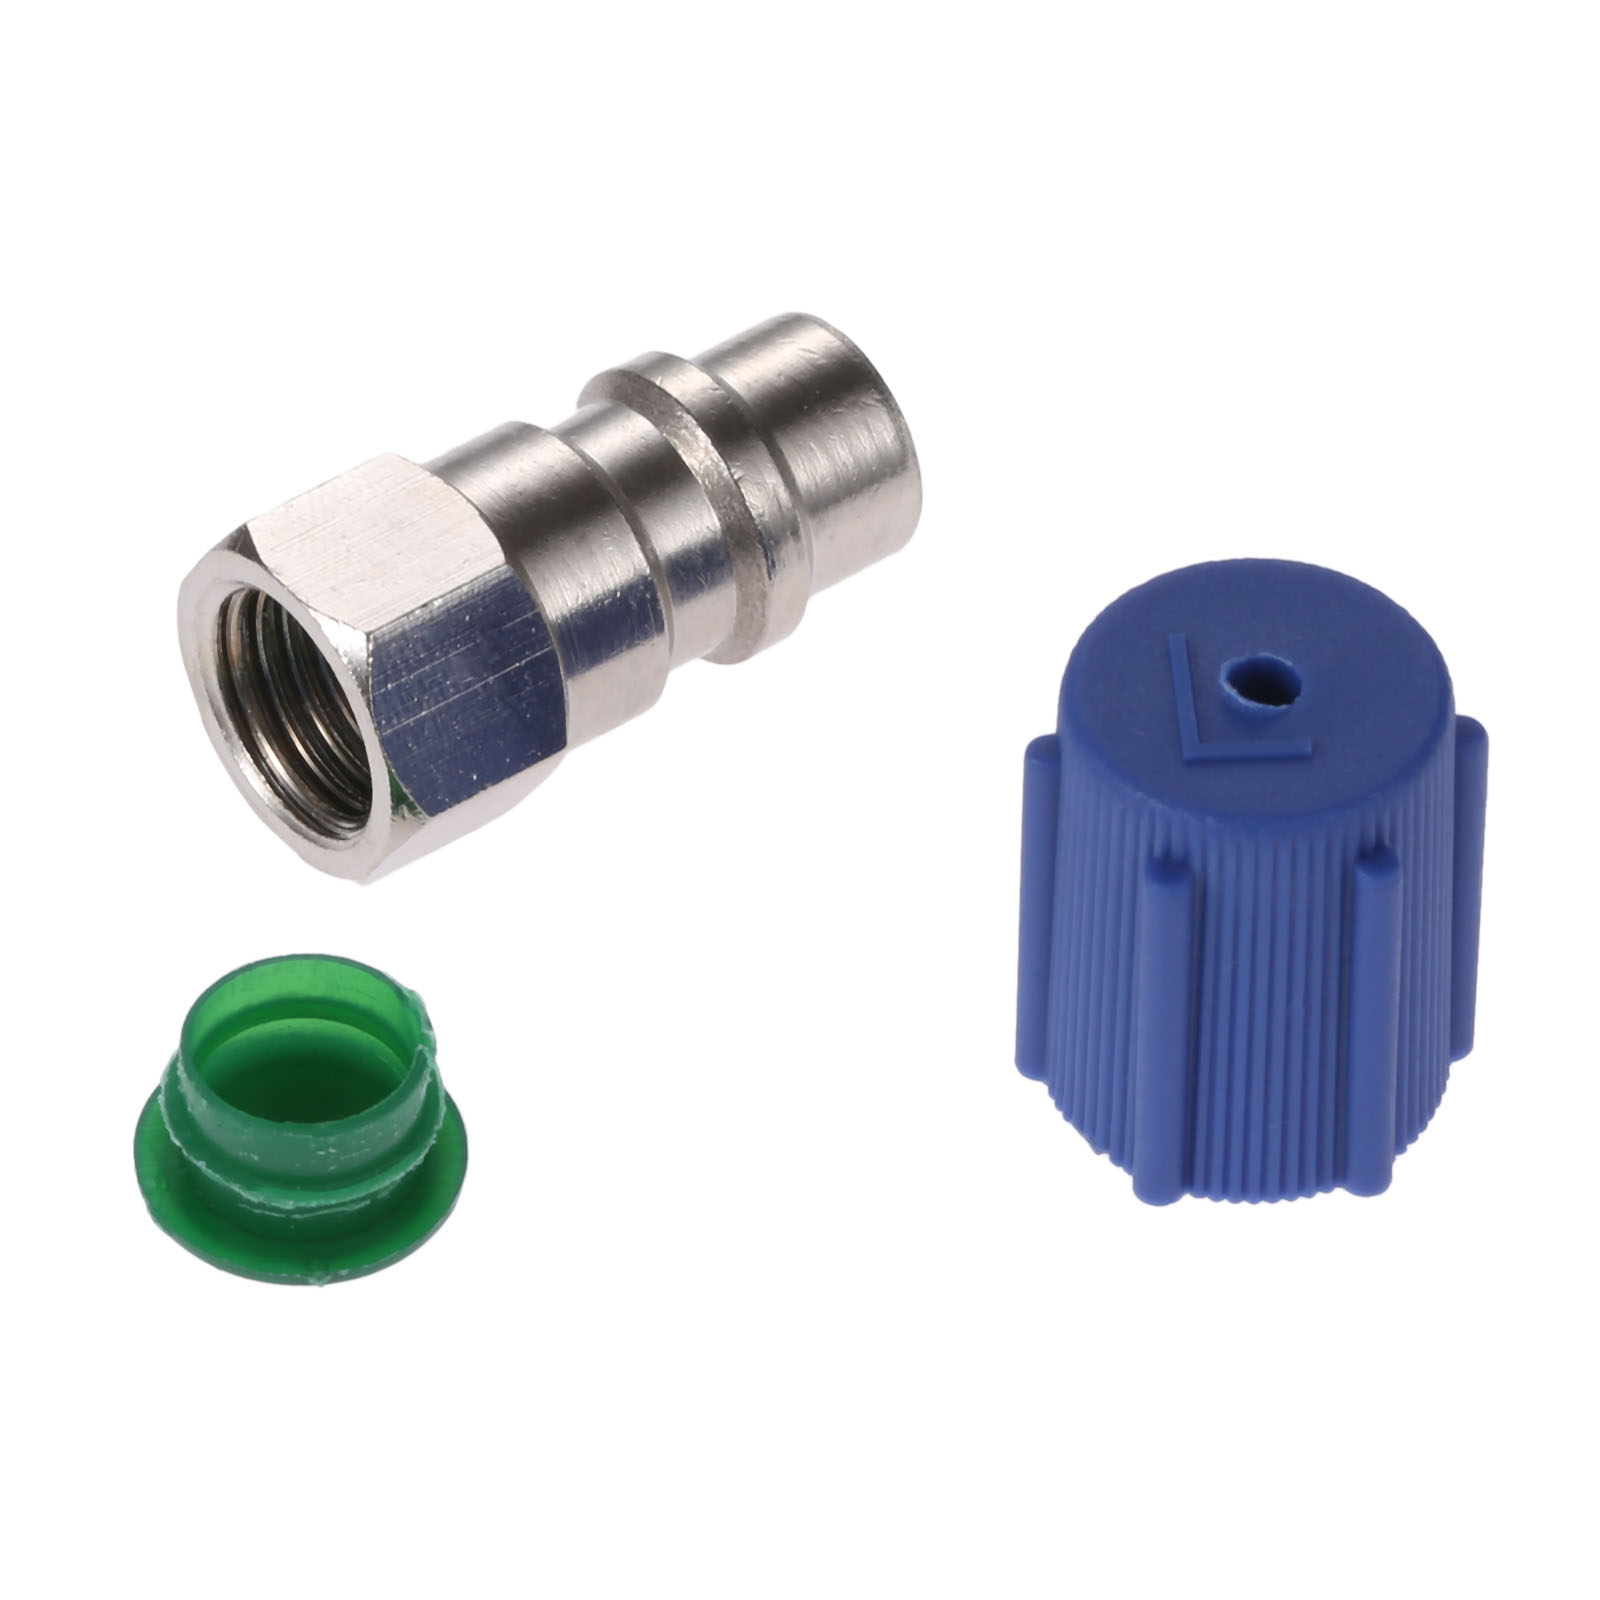 Image 4 - Yetaha Car A/C 3/8 7/16 Straight Adapters R12 R22 To R134a With Removable Valve Core & Service Port Caps-in Air-conditioning Installation from Automobiles & Motorcycles